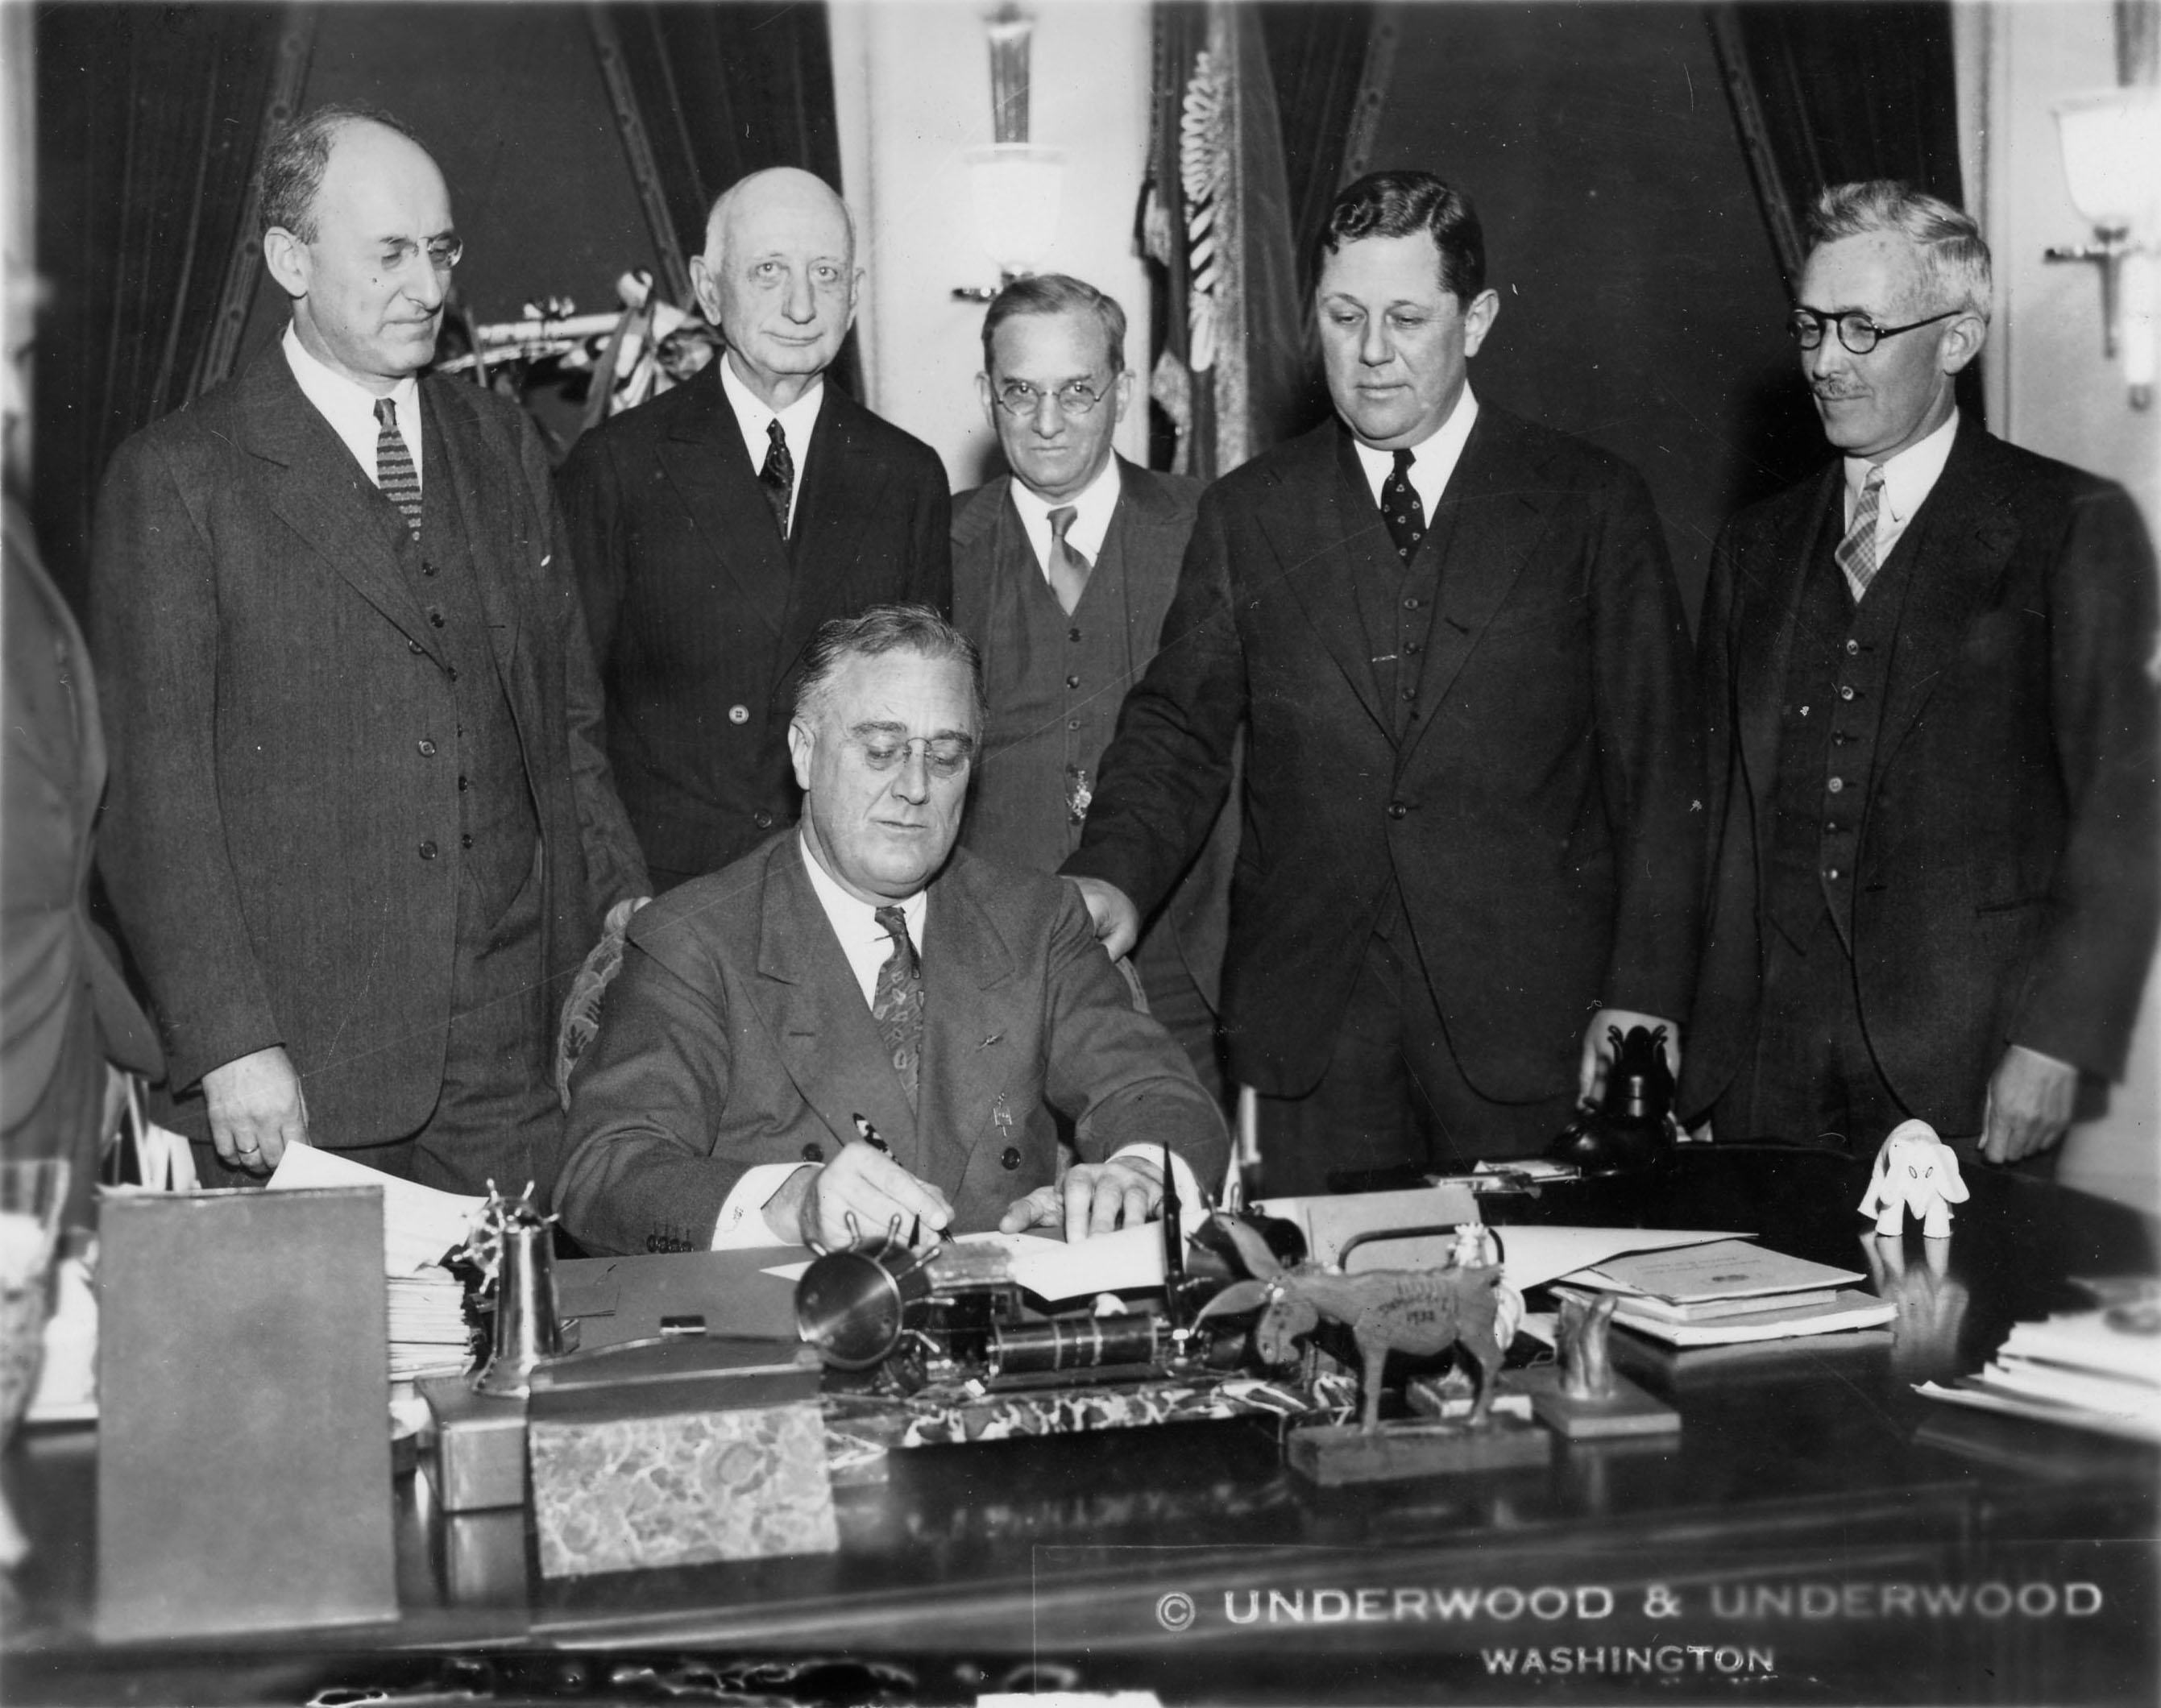 Roosevelt new deal image Federal Reserve Public Domain